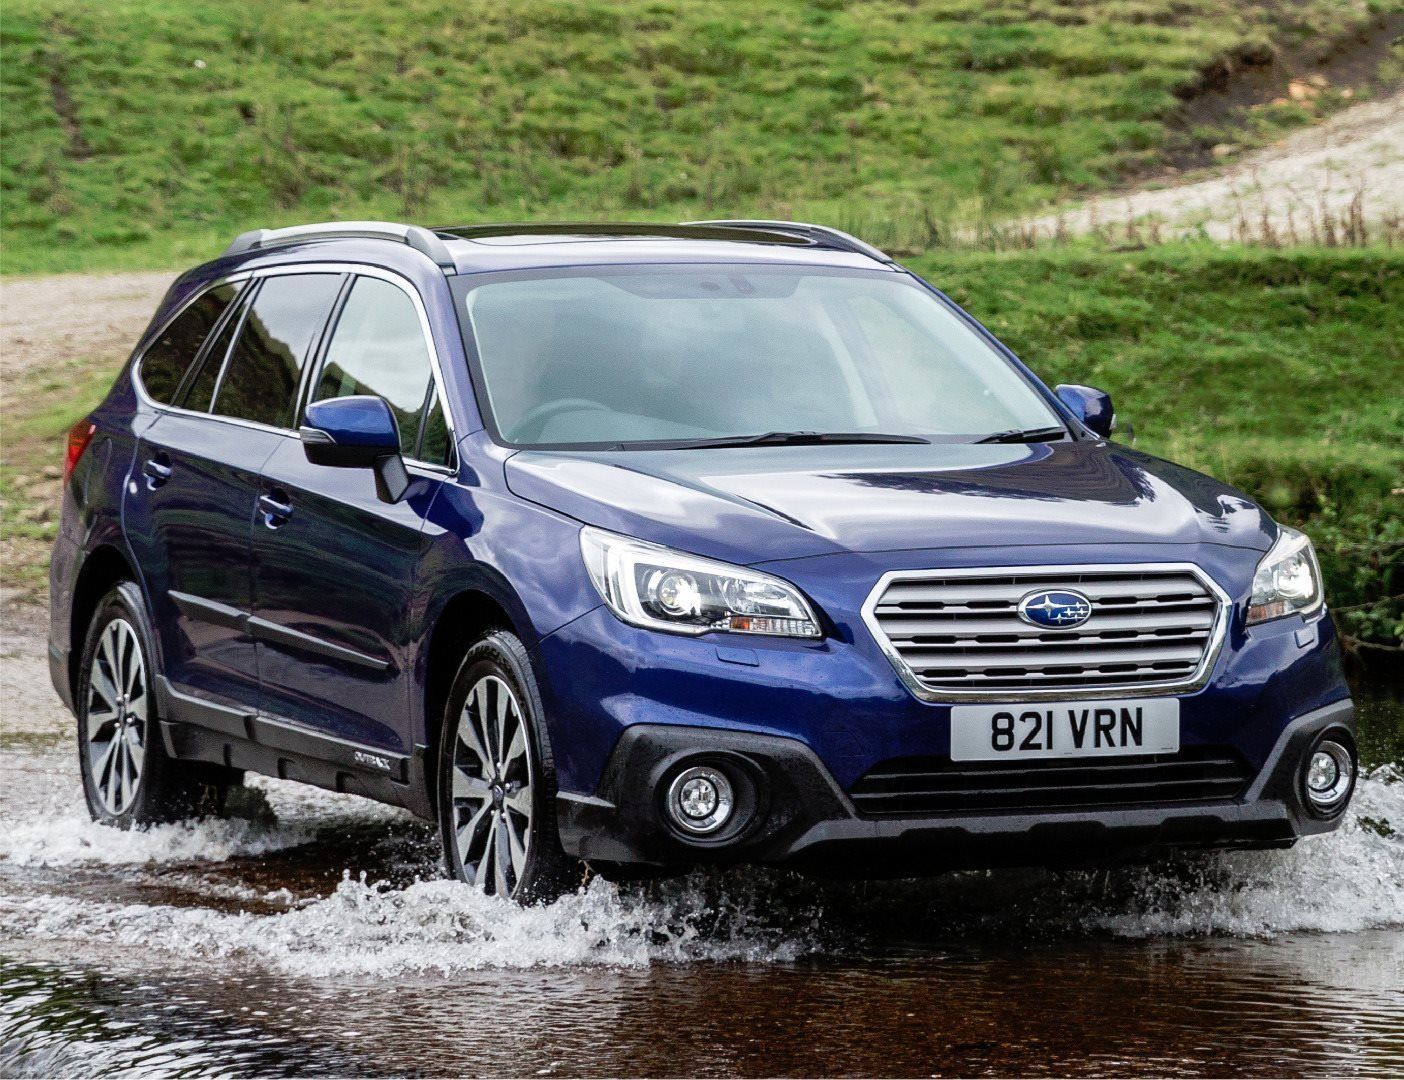 SUBARU SCOOPS ACCOLADES IN DRIVER POWER SURVEY